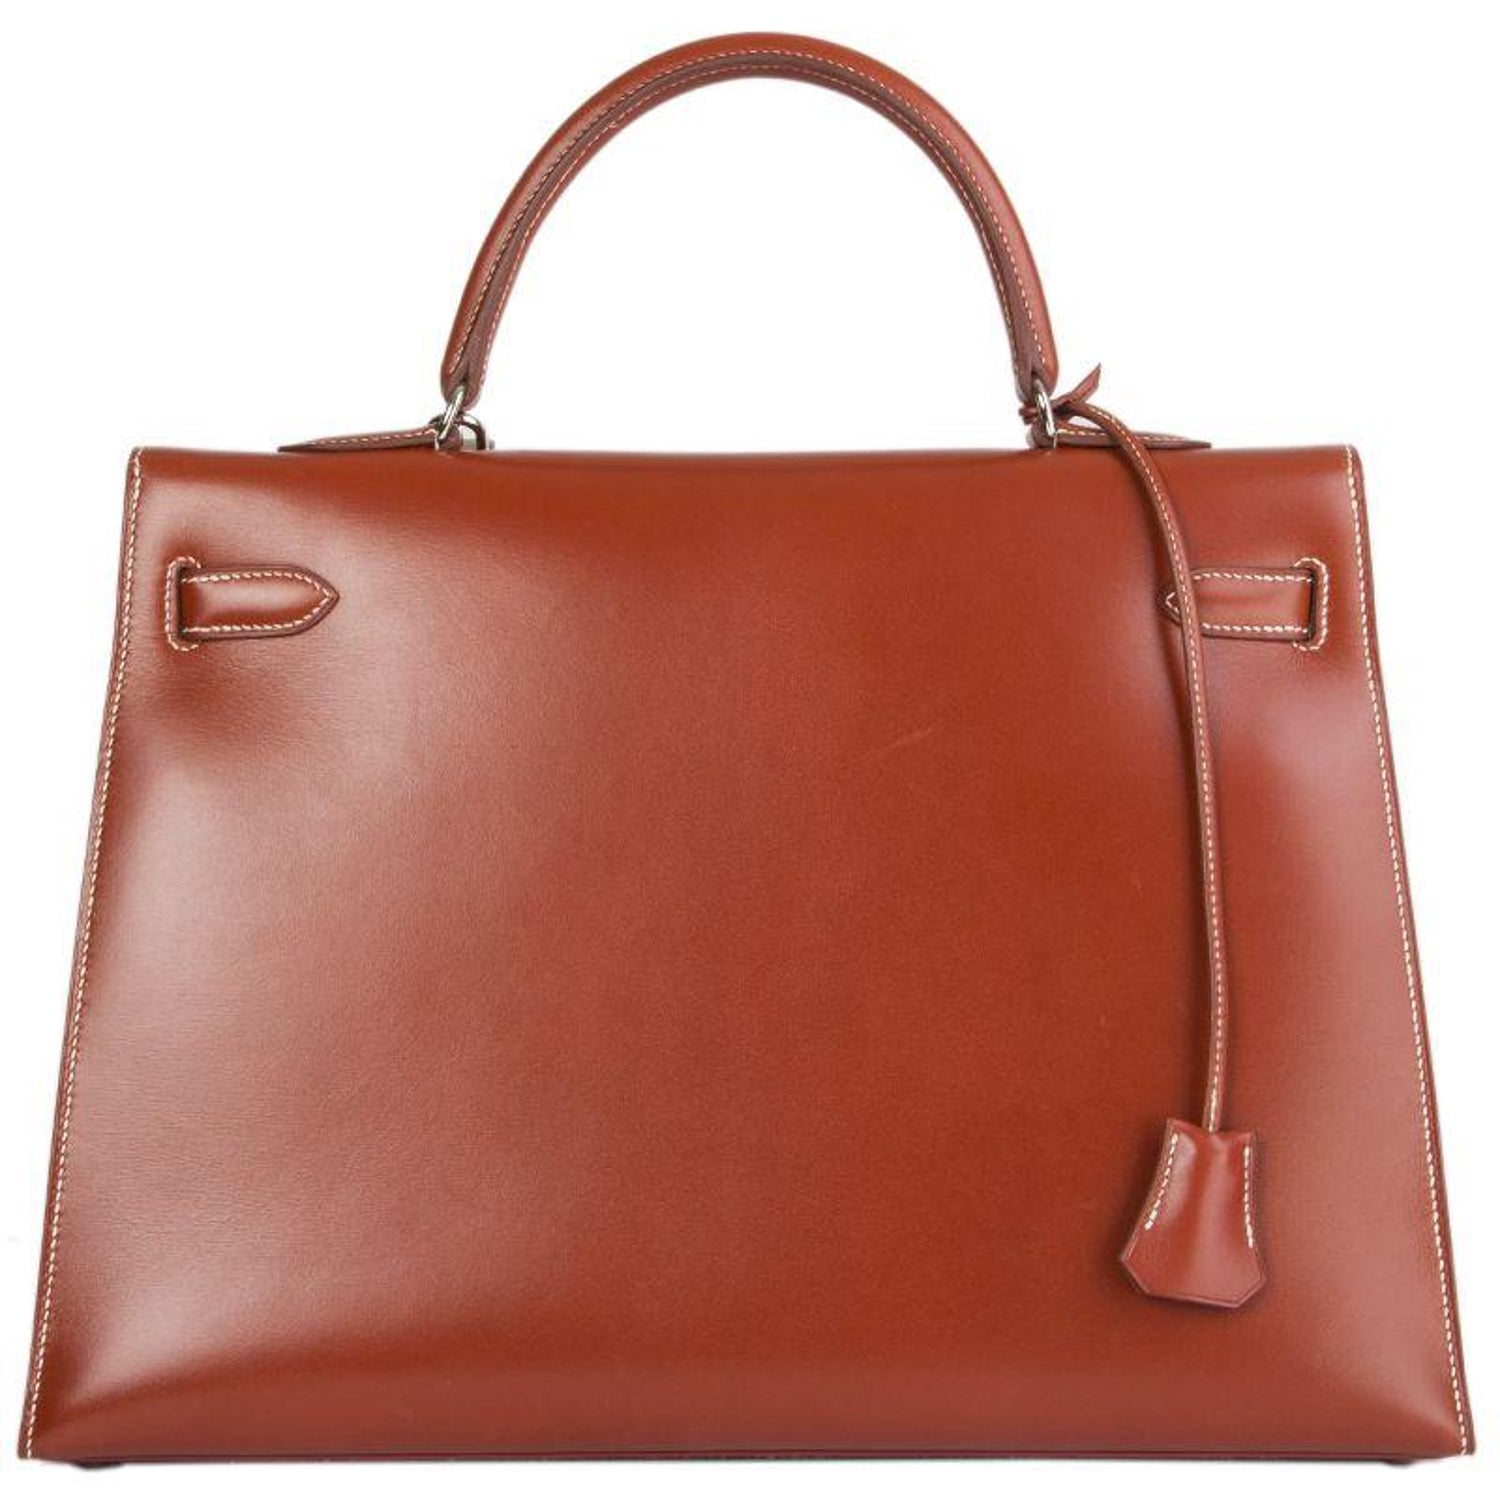 3d2824a28684 HERMES Brique red Box KELLY II 35 SELLIER Bag at 1stdibs